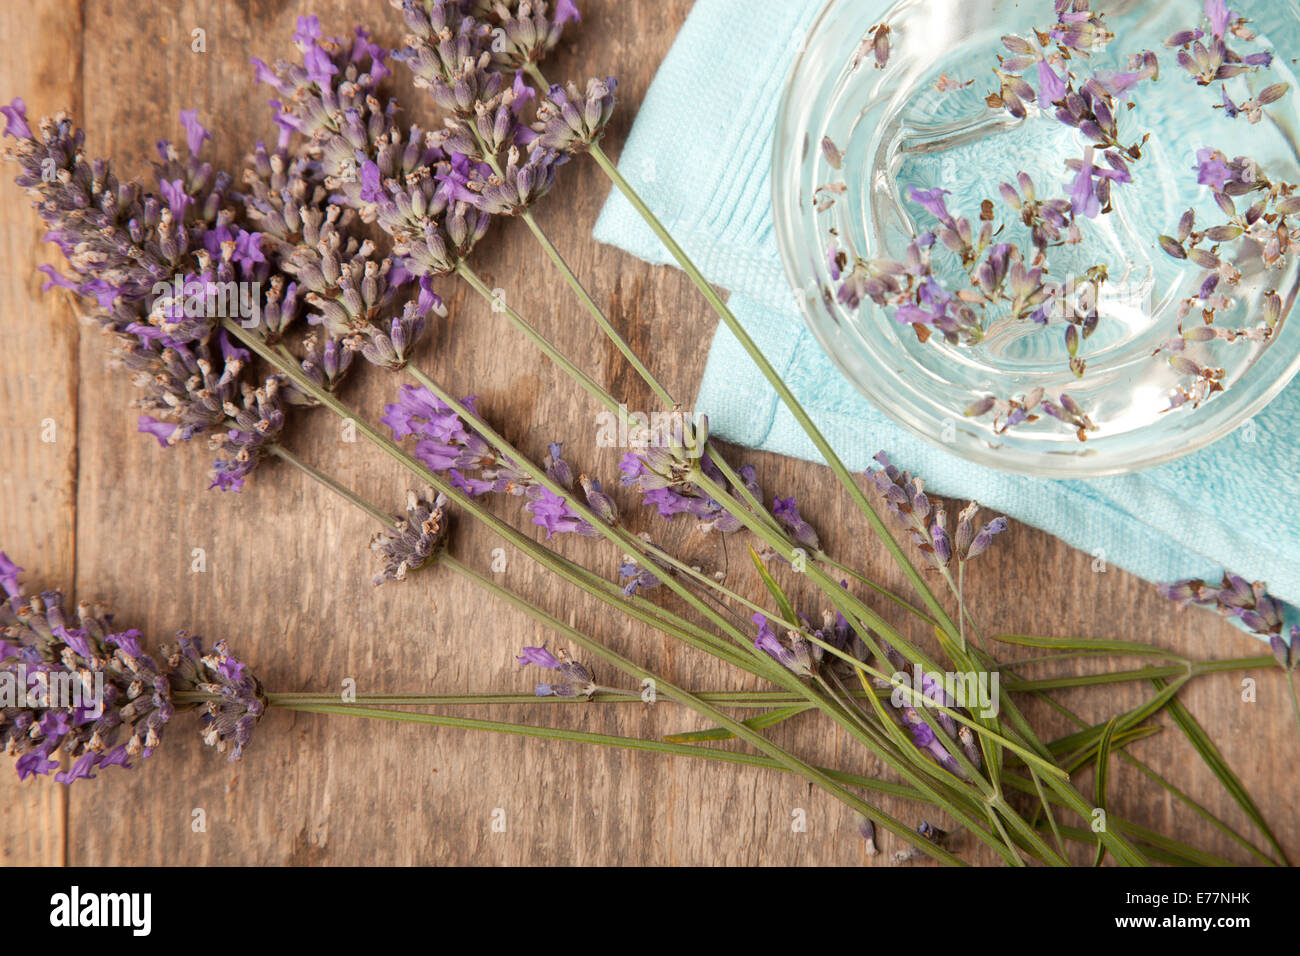 lavenders in water on blue towel on wooden table - Stock Image